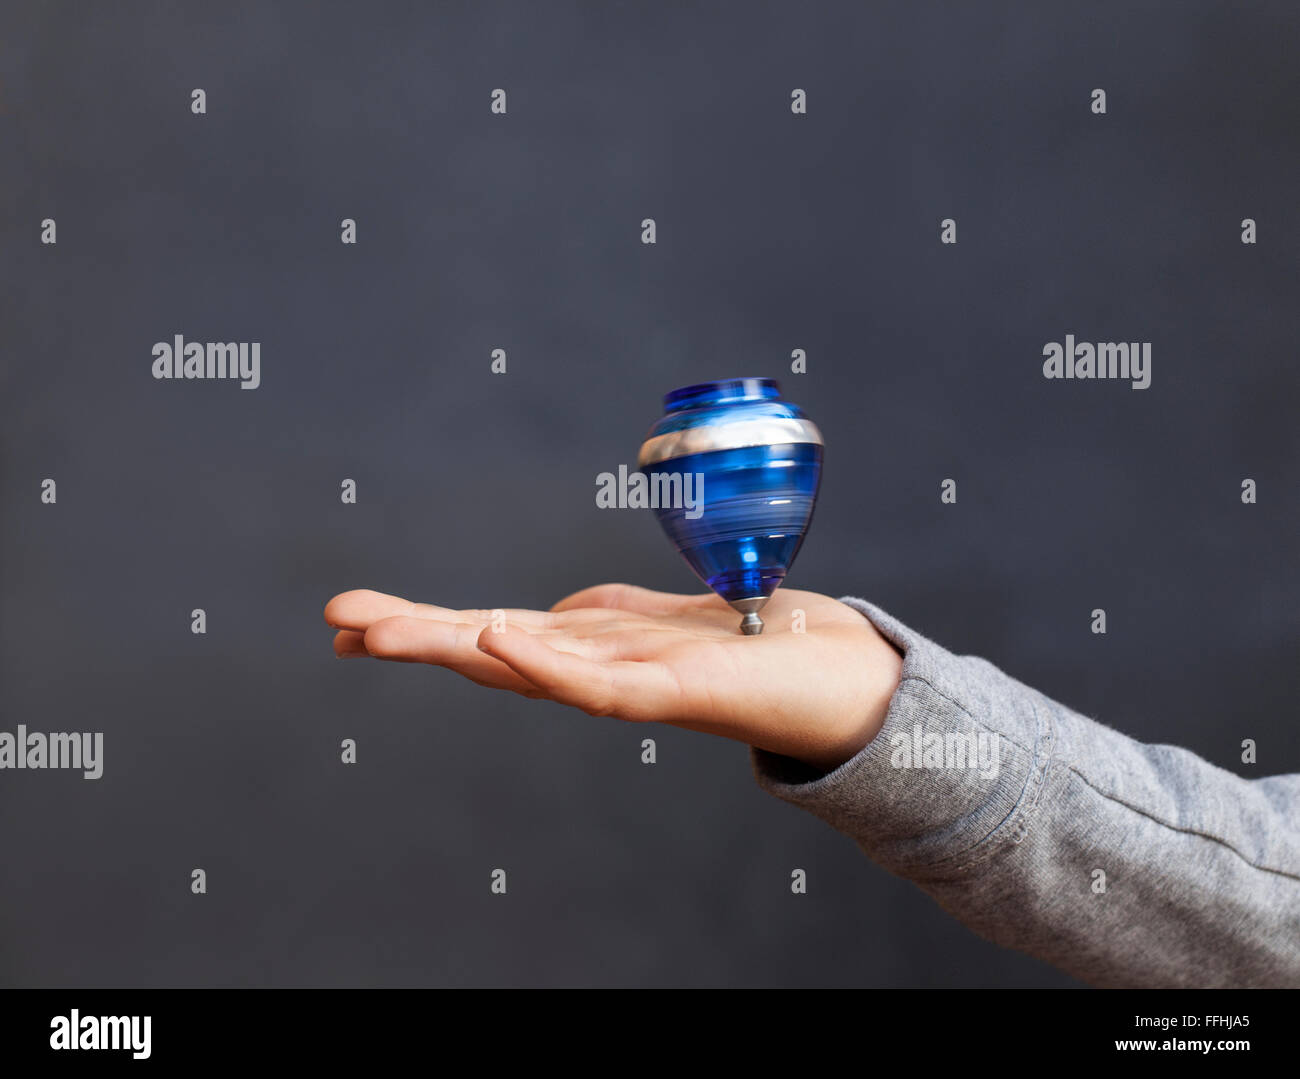 A boy spinining a top on his hand. Dark background and copy space for your text. - Stock Image